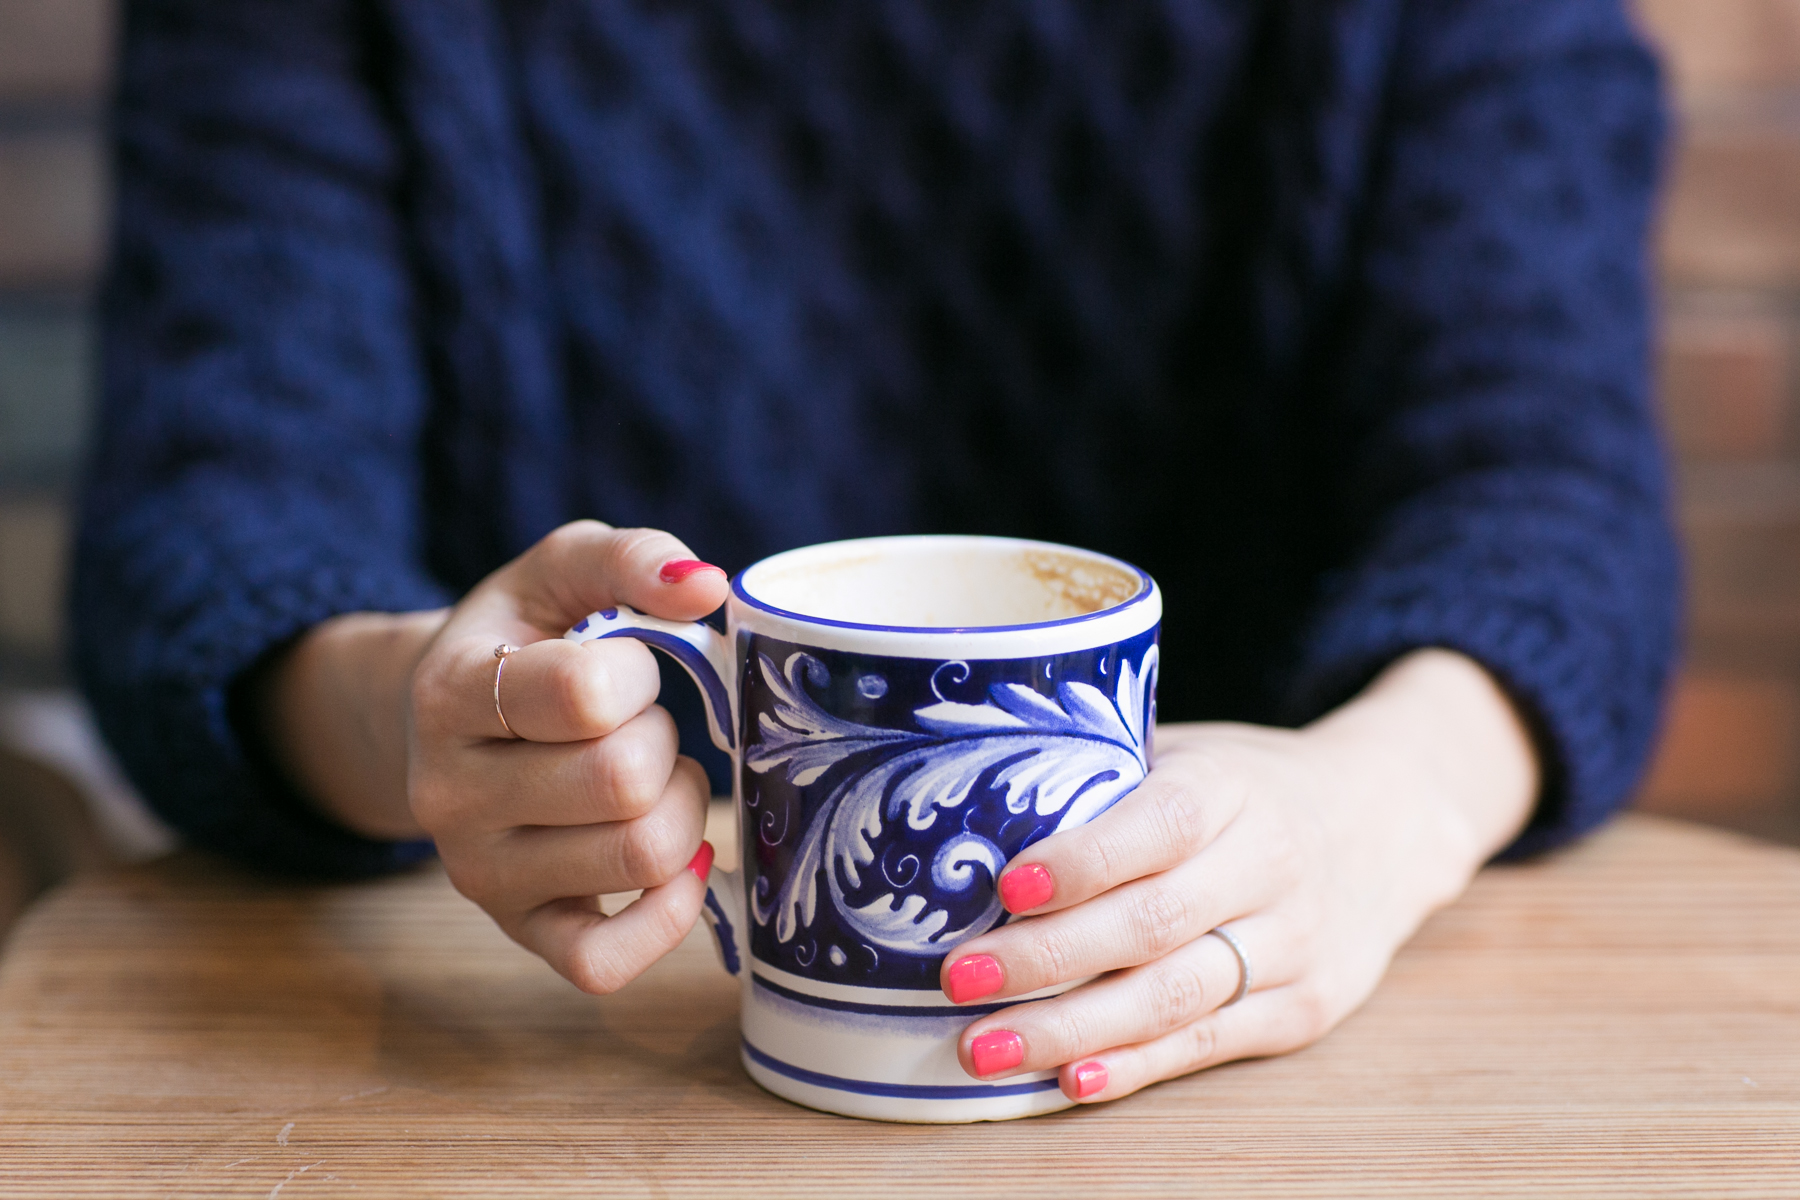 I'm kind of obsessed with their gorgeous mugs. Next time I'll be peering underneath to find out where I can get some of my own (yes, I'm  that  girl)!     We'll wrap up this week with a seriously artisanal shop just bursting with beauty... can you guess where we're going next?